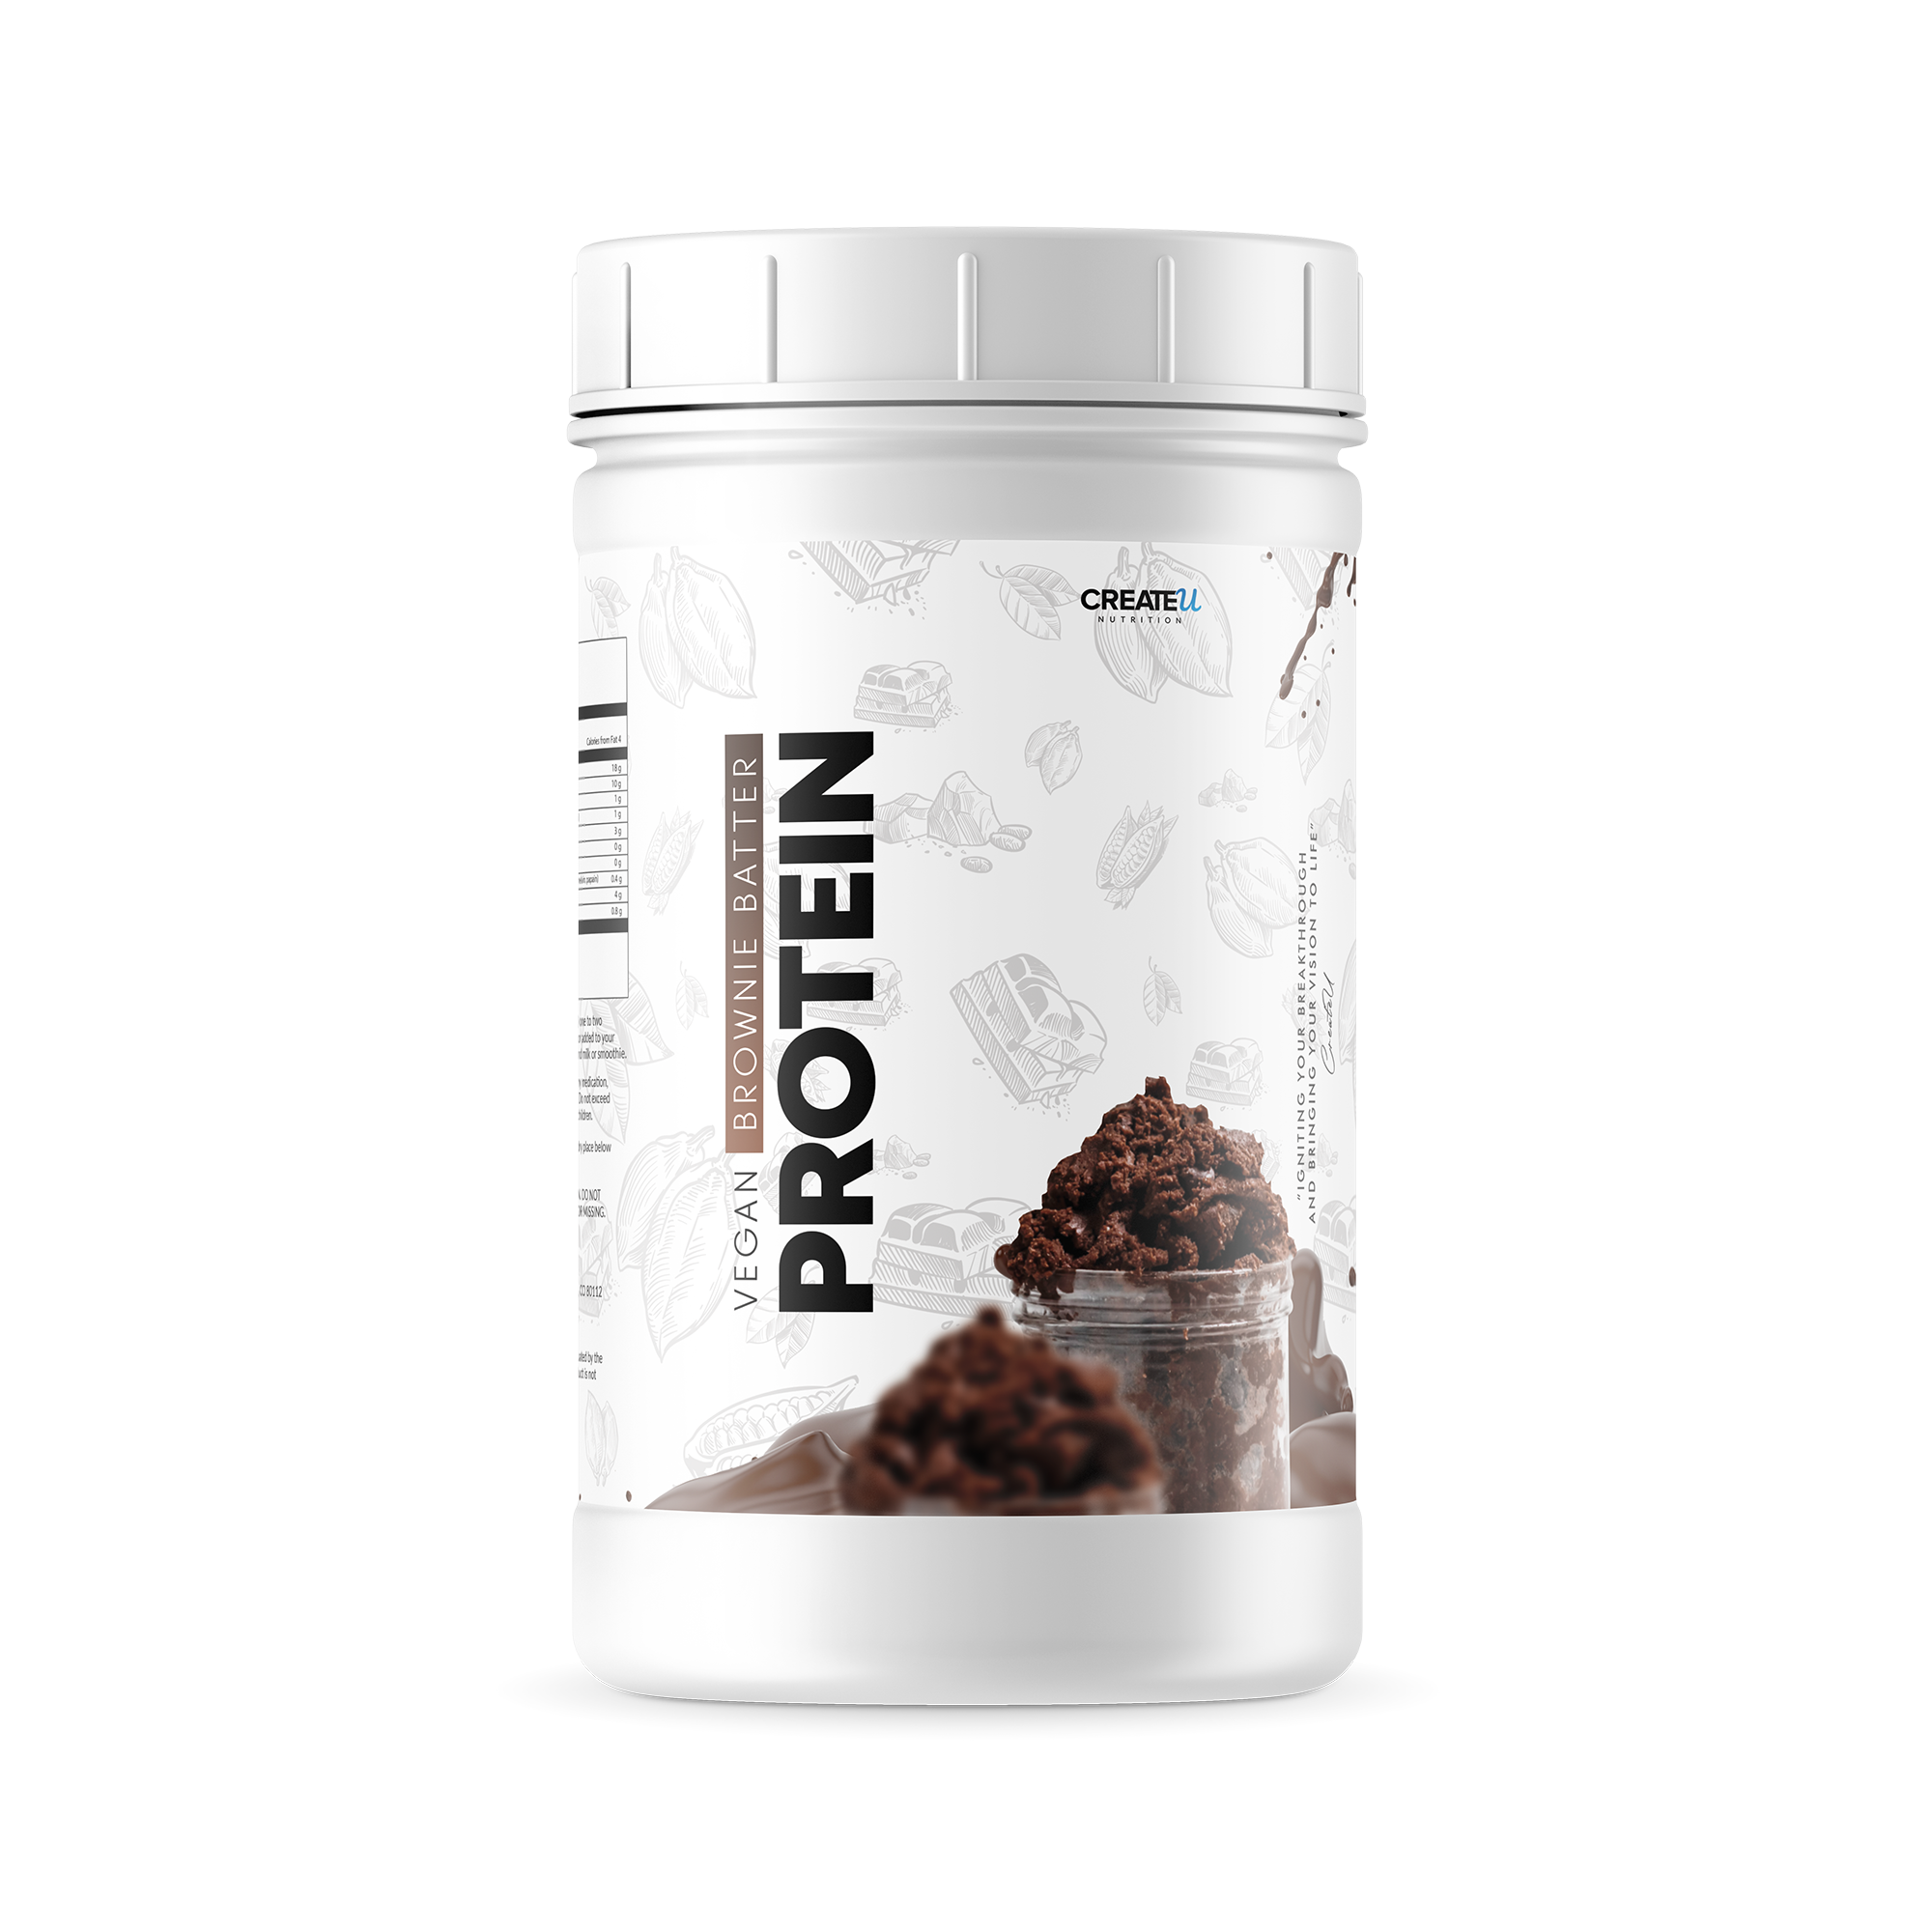 Vegan Protein Product